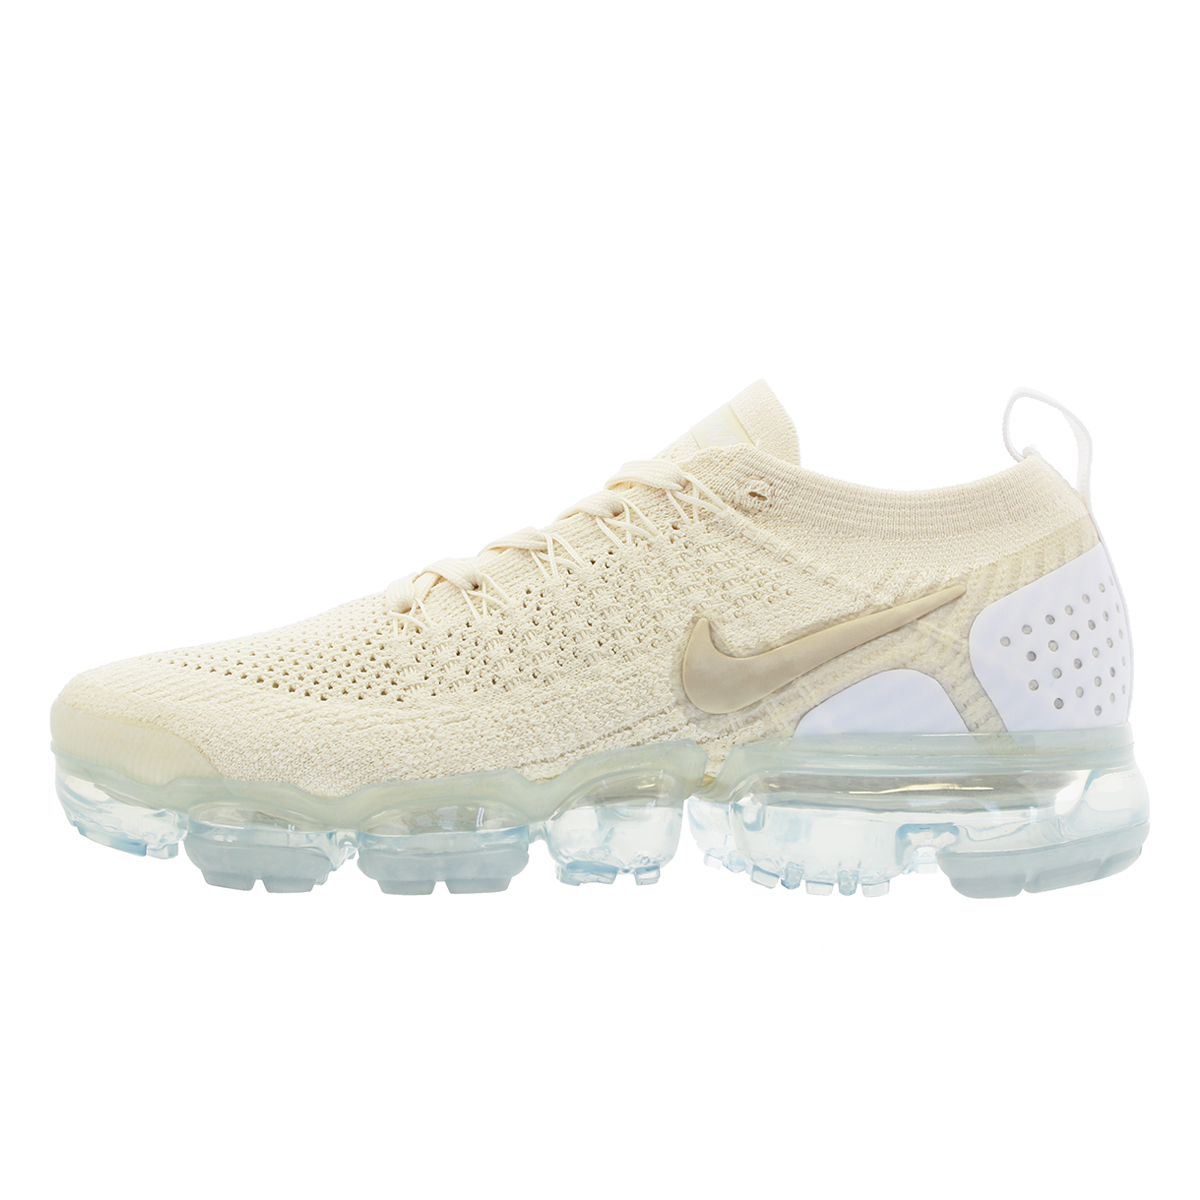 122b284878 ... NIKE WMNS AIR VAPORMAX FLYKNIT 2 Nike women vapor max fried food knit 2  LIGHT CREAM ...